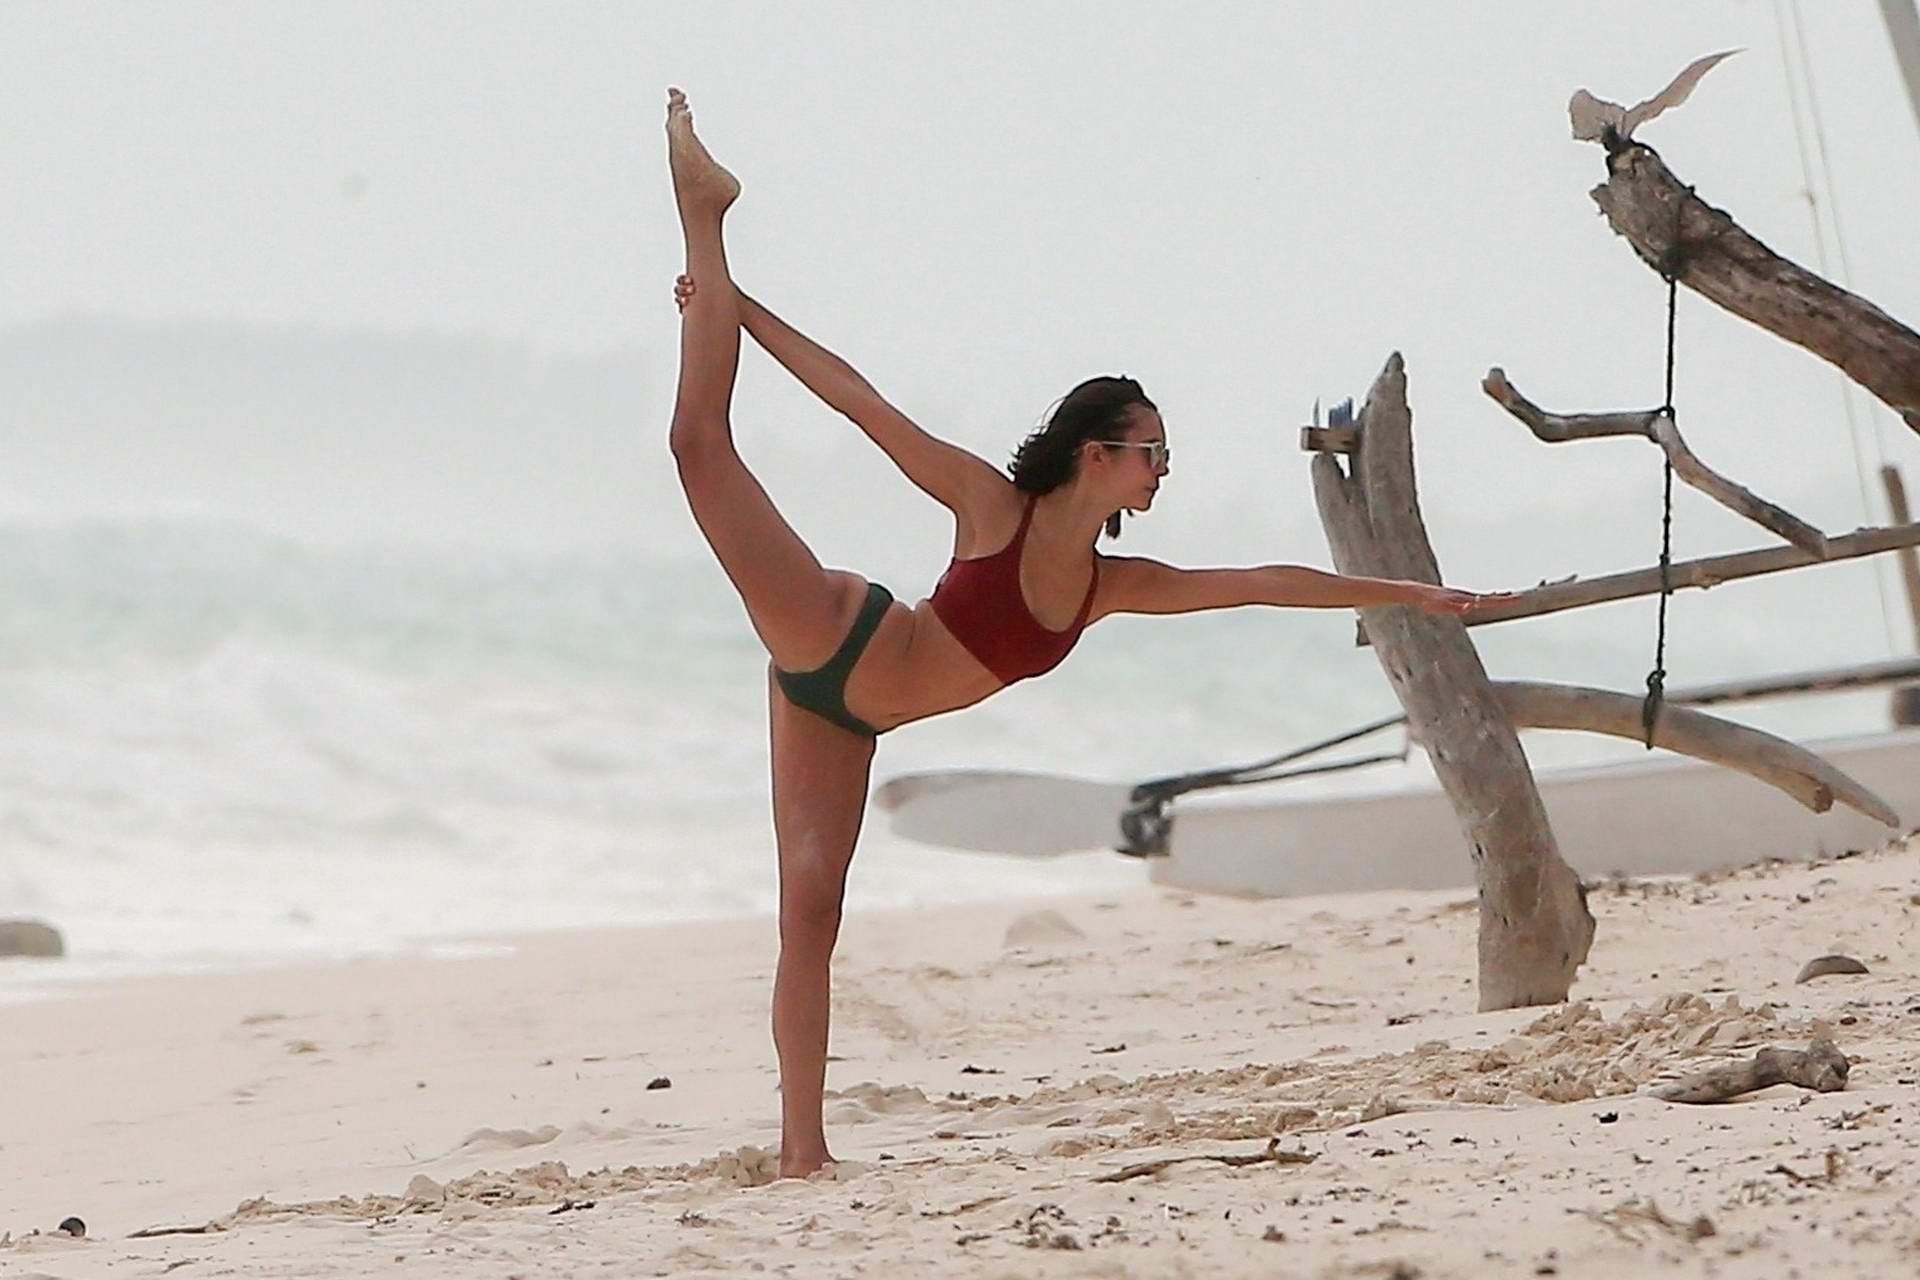 Nina Dobrev enjoys some beach yoga and cartwheels with her friends in Tulum, Mexico